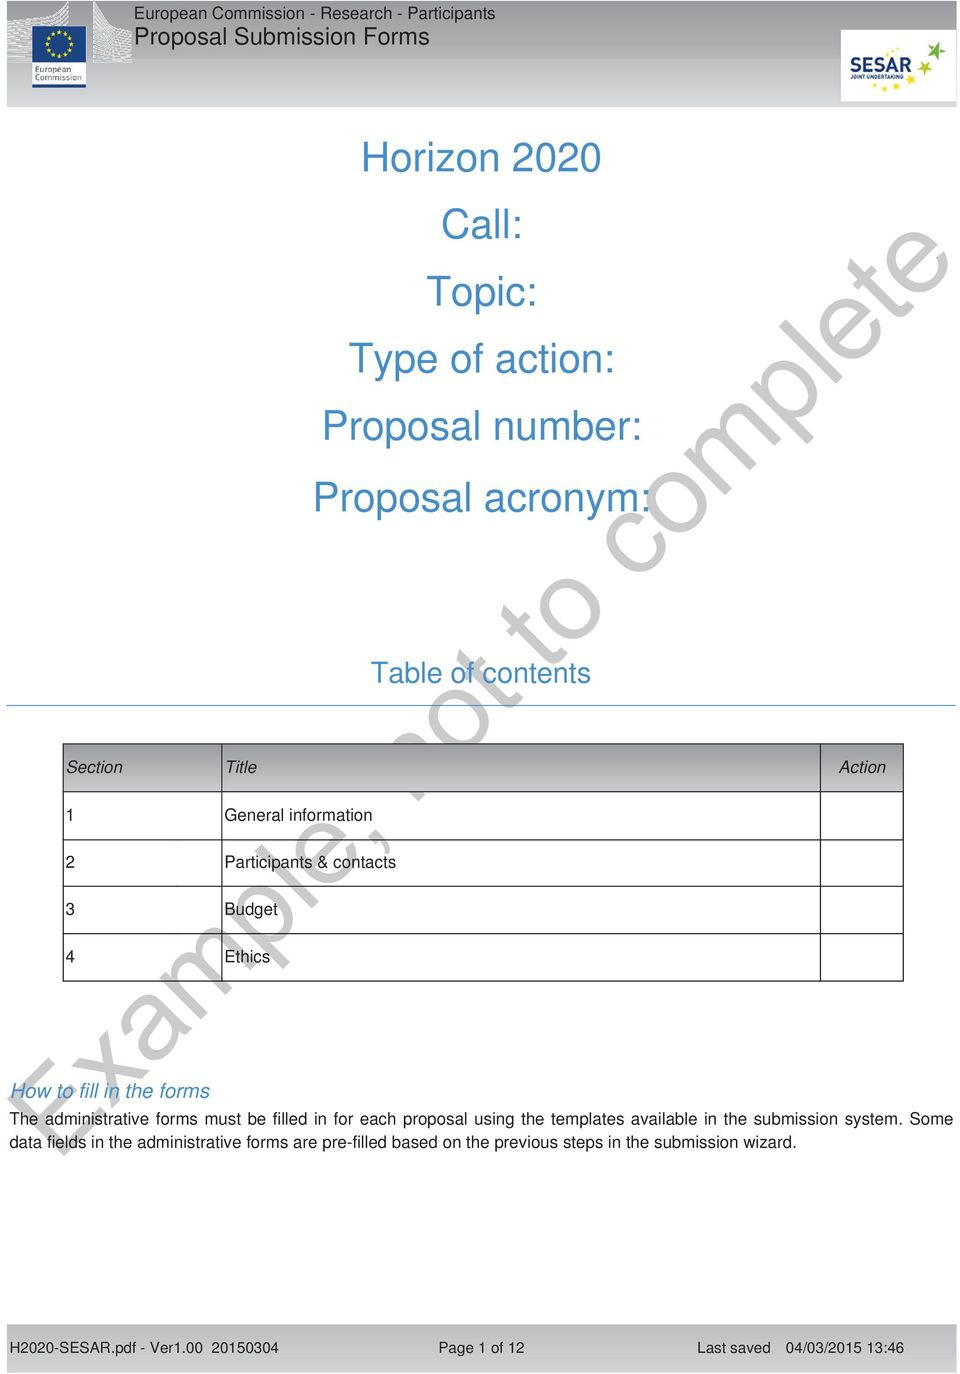 complete The administrative forms must be filled in for each proposal using the templates available in the submission system.